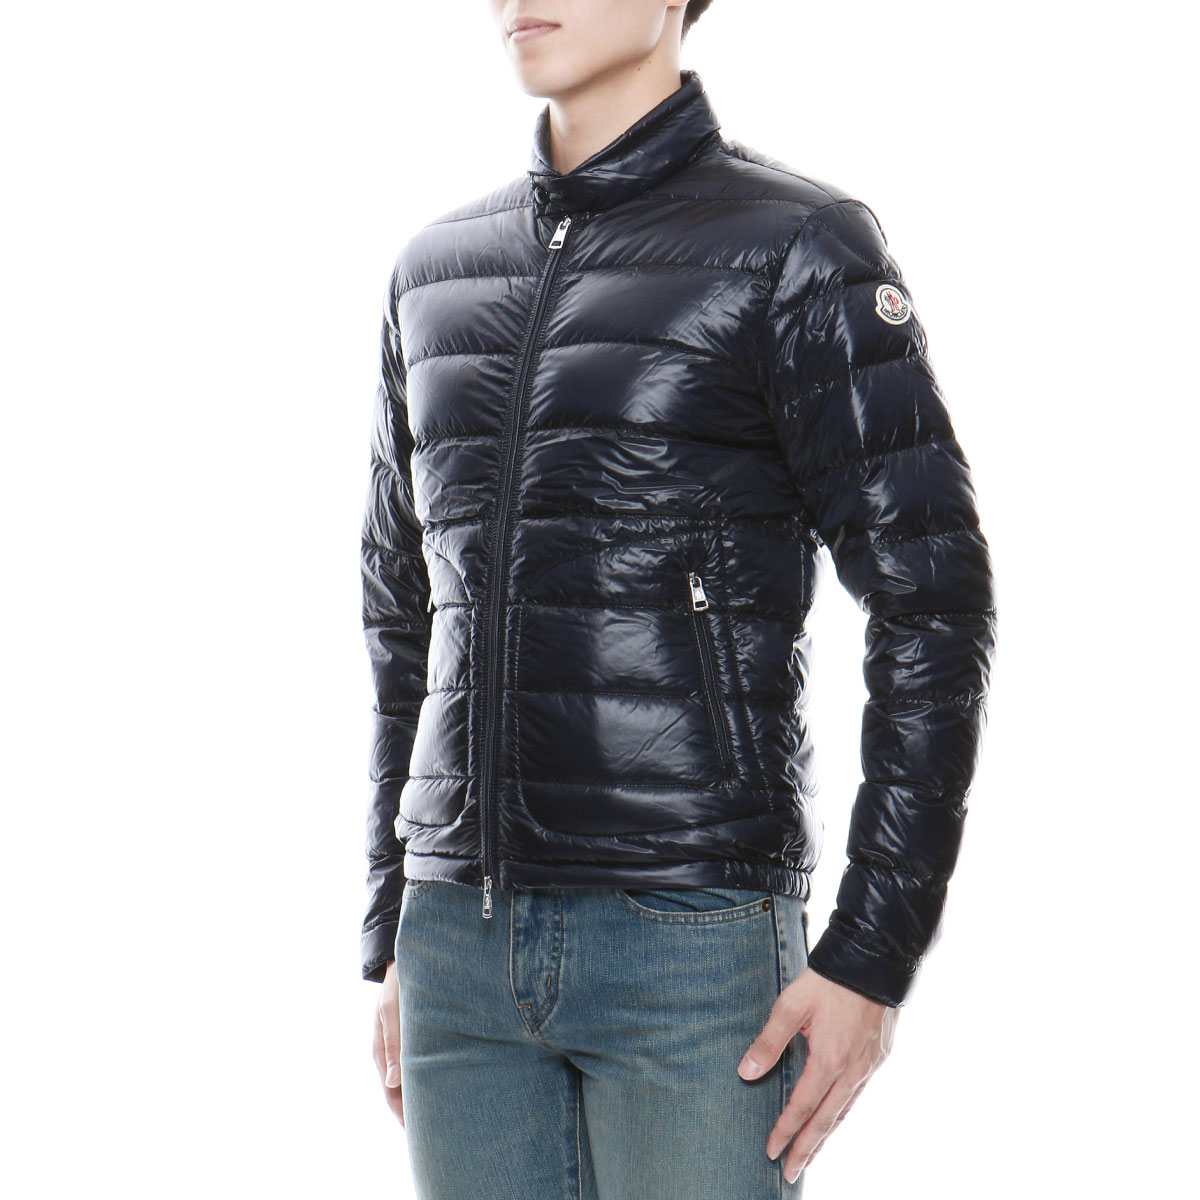 Monk rail MONCLER outer men ACORUS 53029 776 down jacket ACORUS アコルス NAVY dark blue